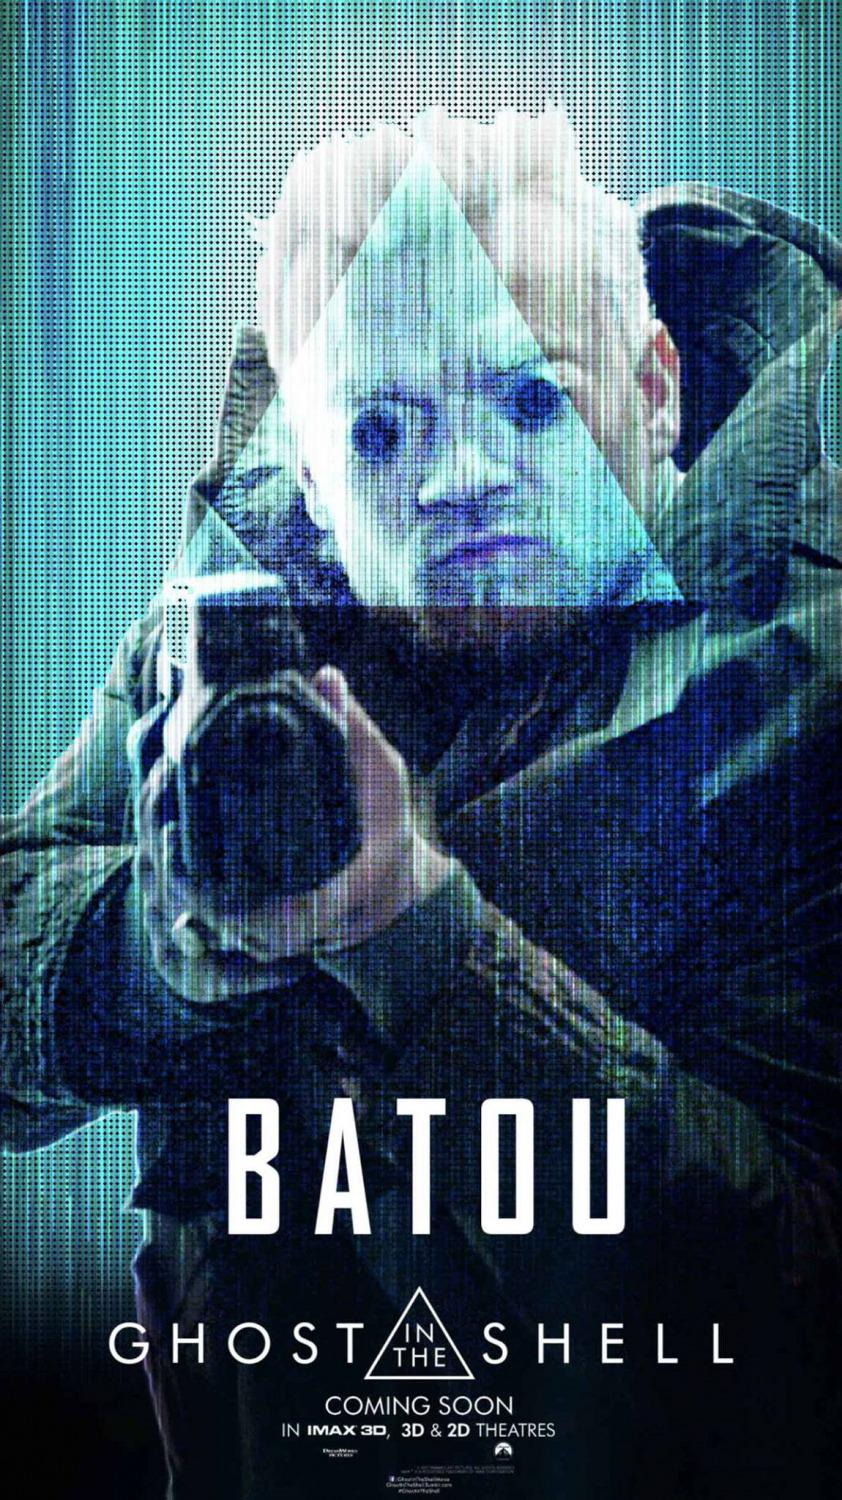 Ghost in the Shell (live action film 2017) poster - Batou